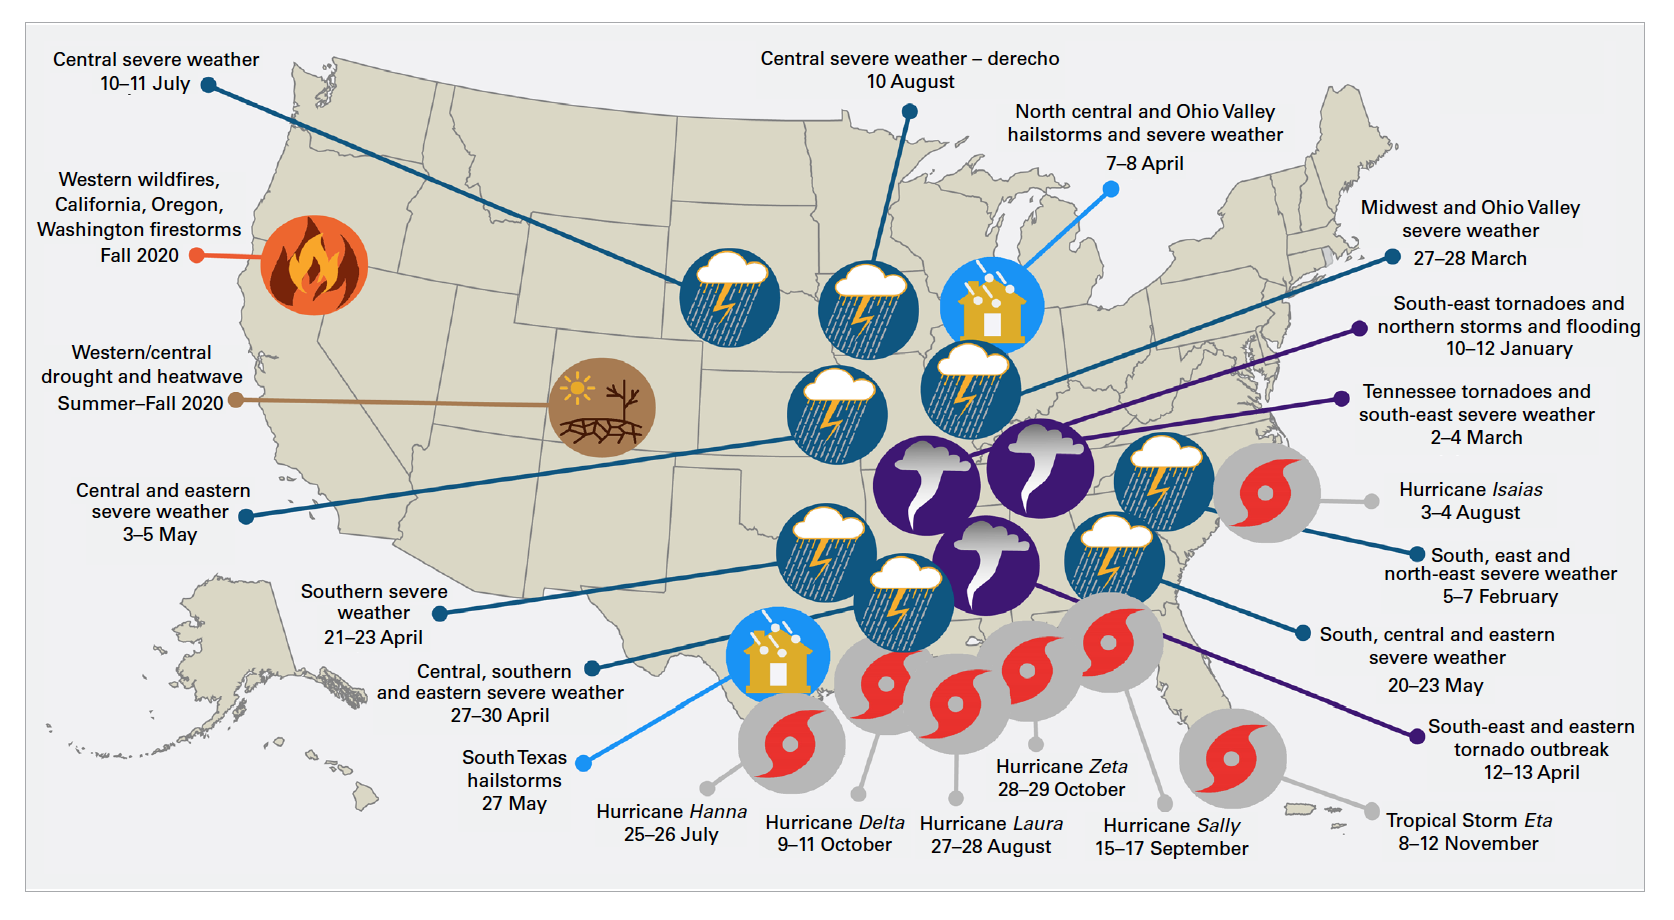 Billion-dollar weather and climate disasters affecting the United States in 2020